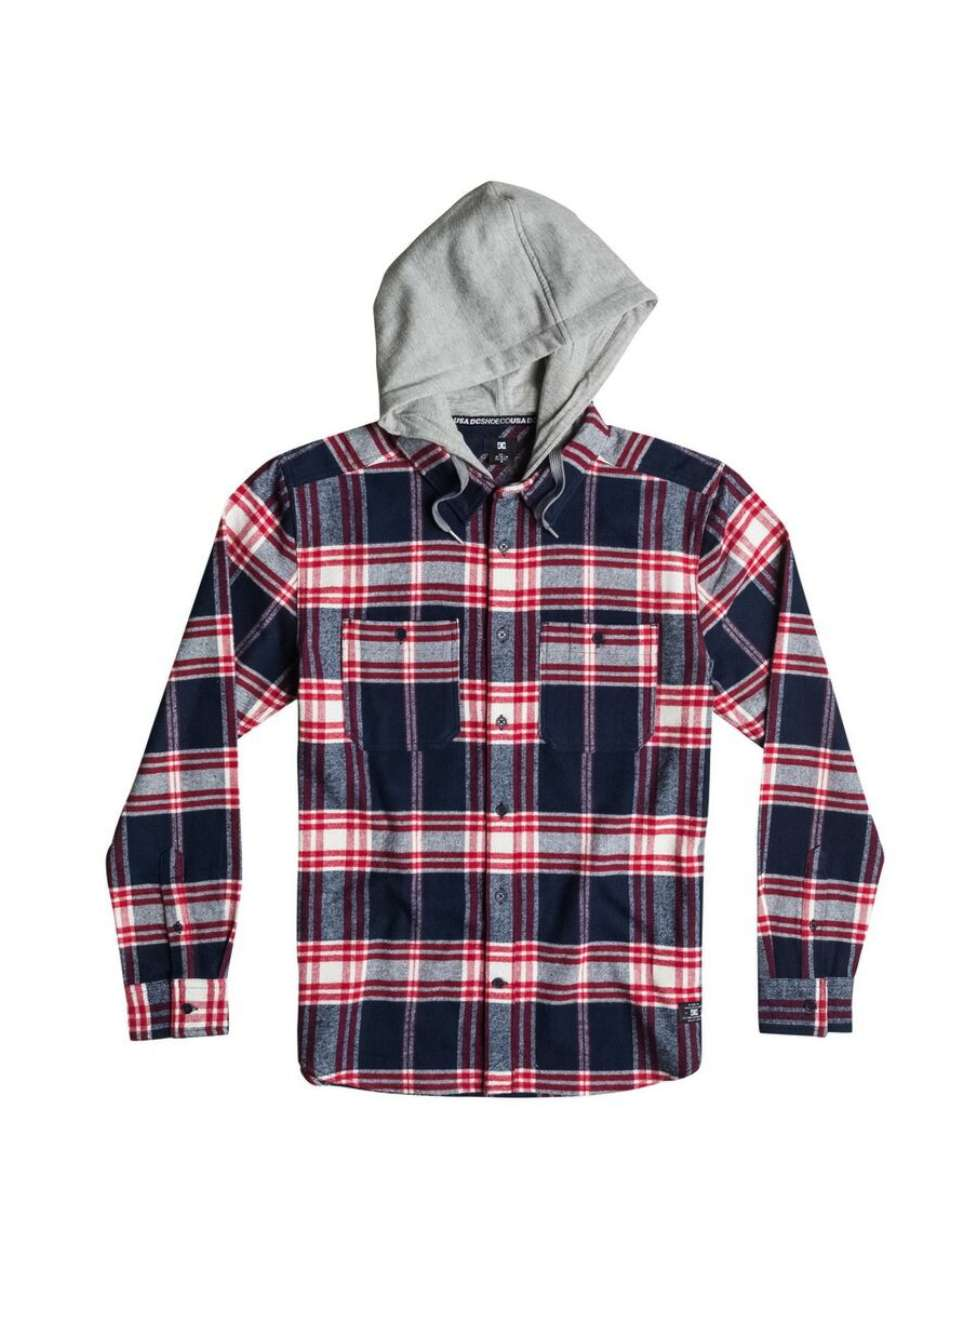 DC SHOES SHIRT HOOD UP - LM BOARD STORE